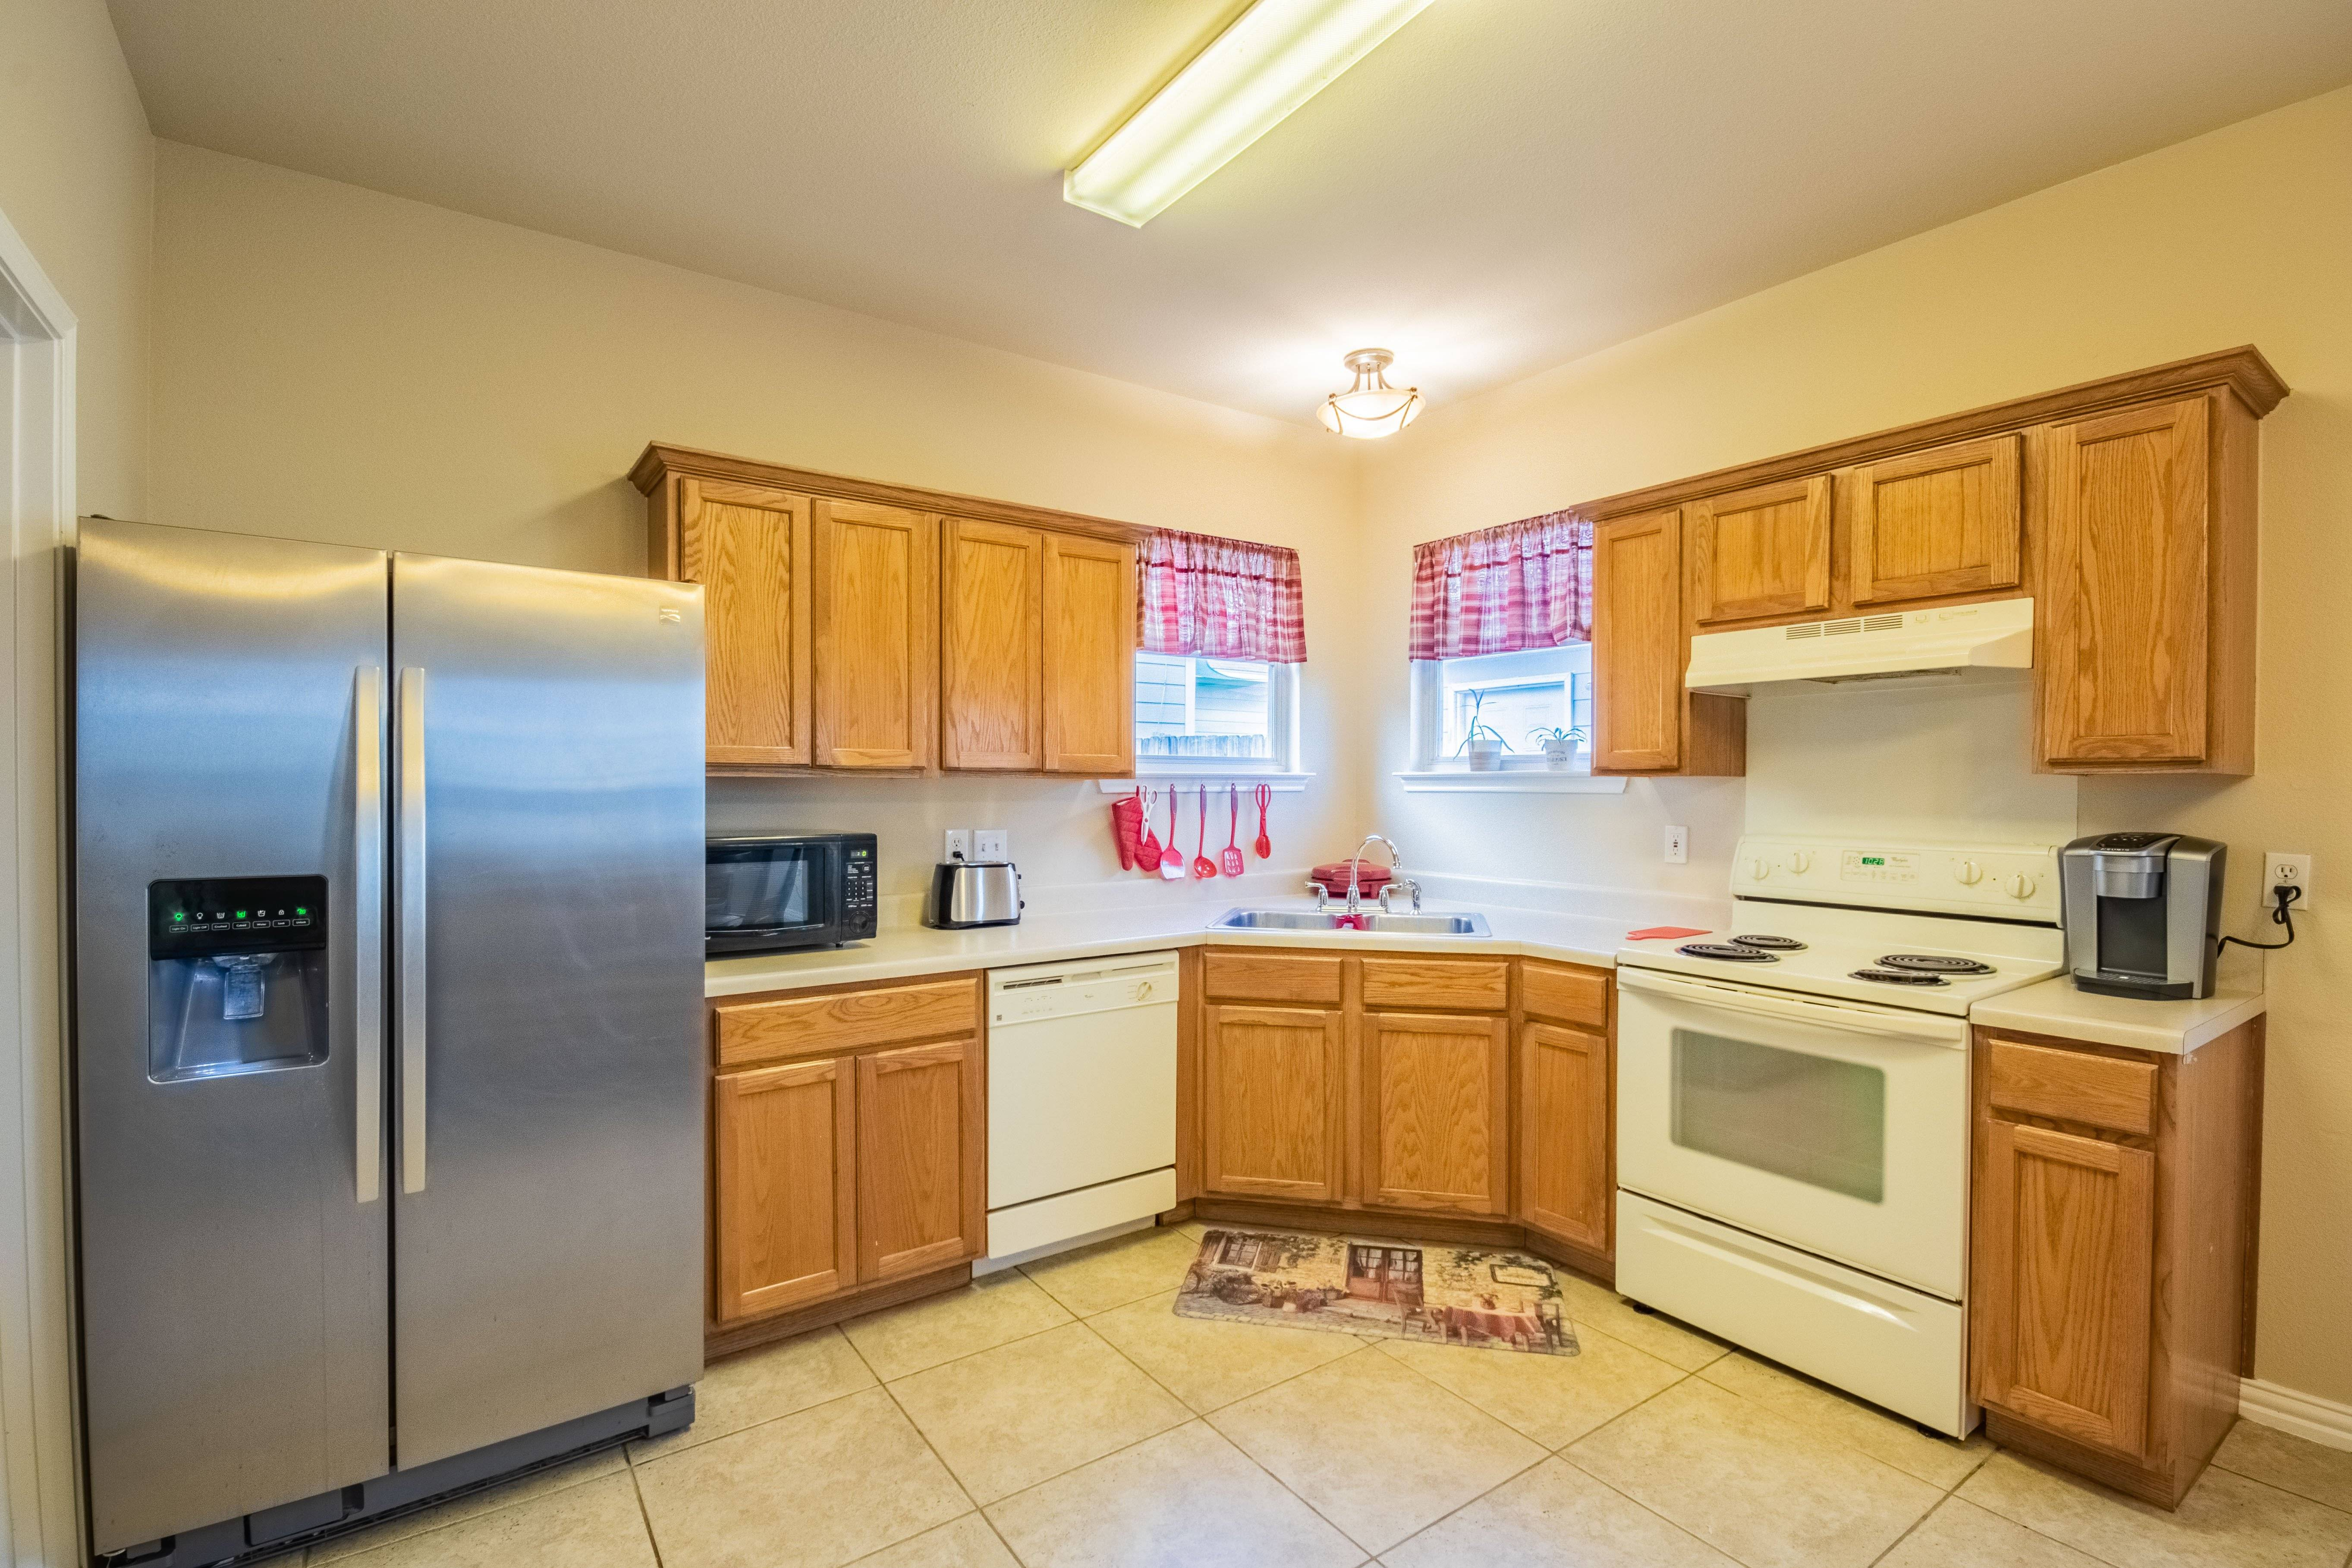 Fully equipped kitchen includes stainless steel refrigerator